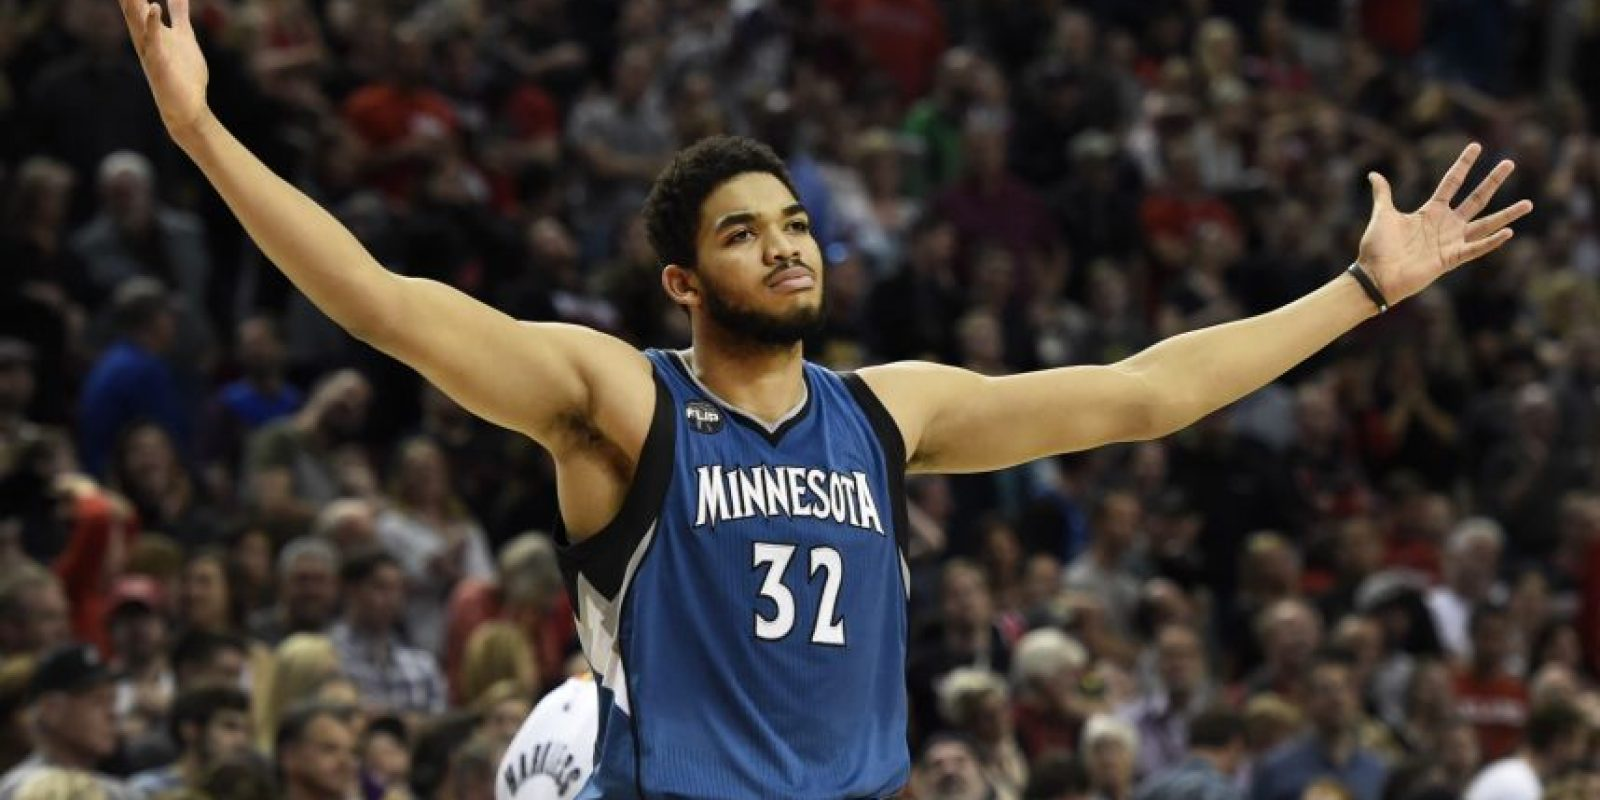 Karl-Anthony Towns Foto:Fuente externa